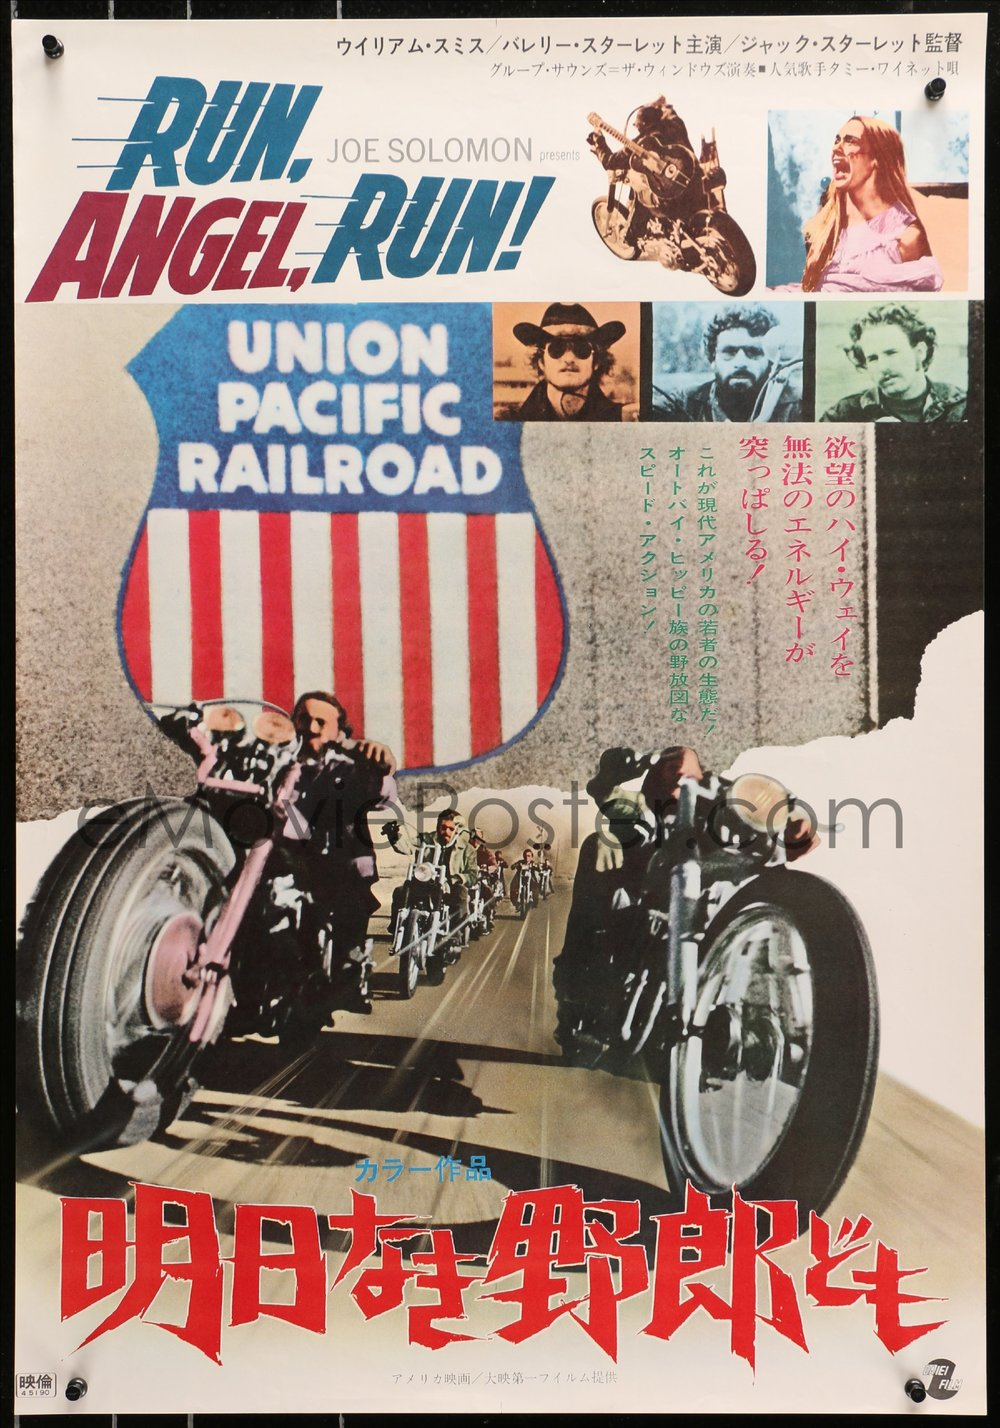 Japanese poster for  Run, Angel, Run!  (Joe Solomon, 1969)